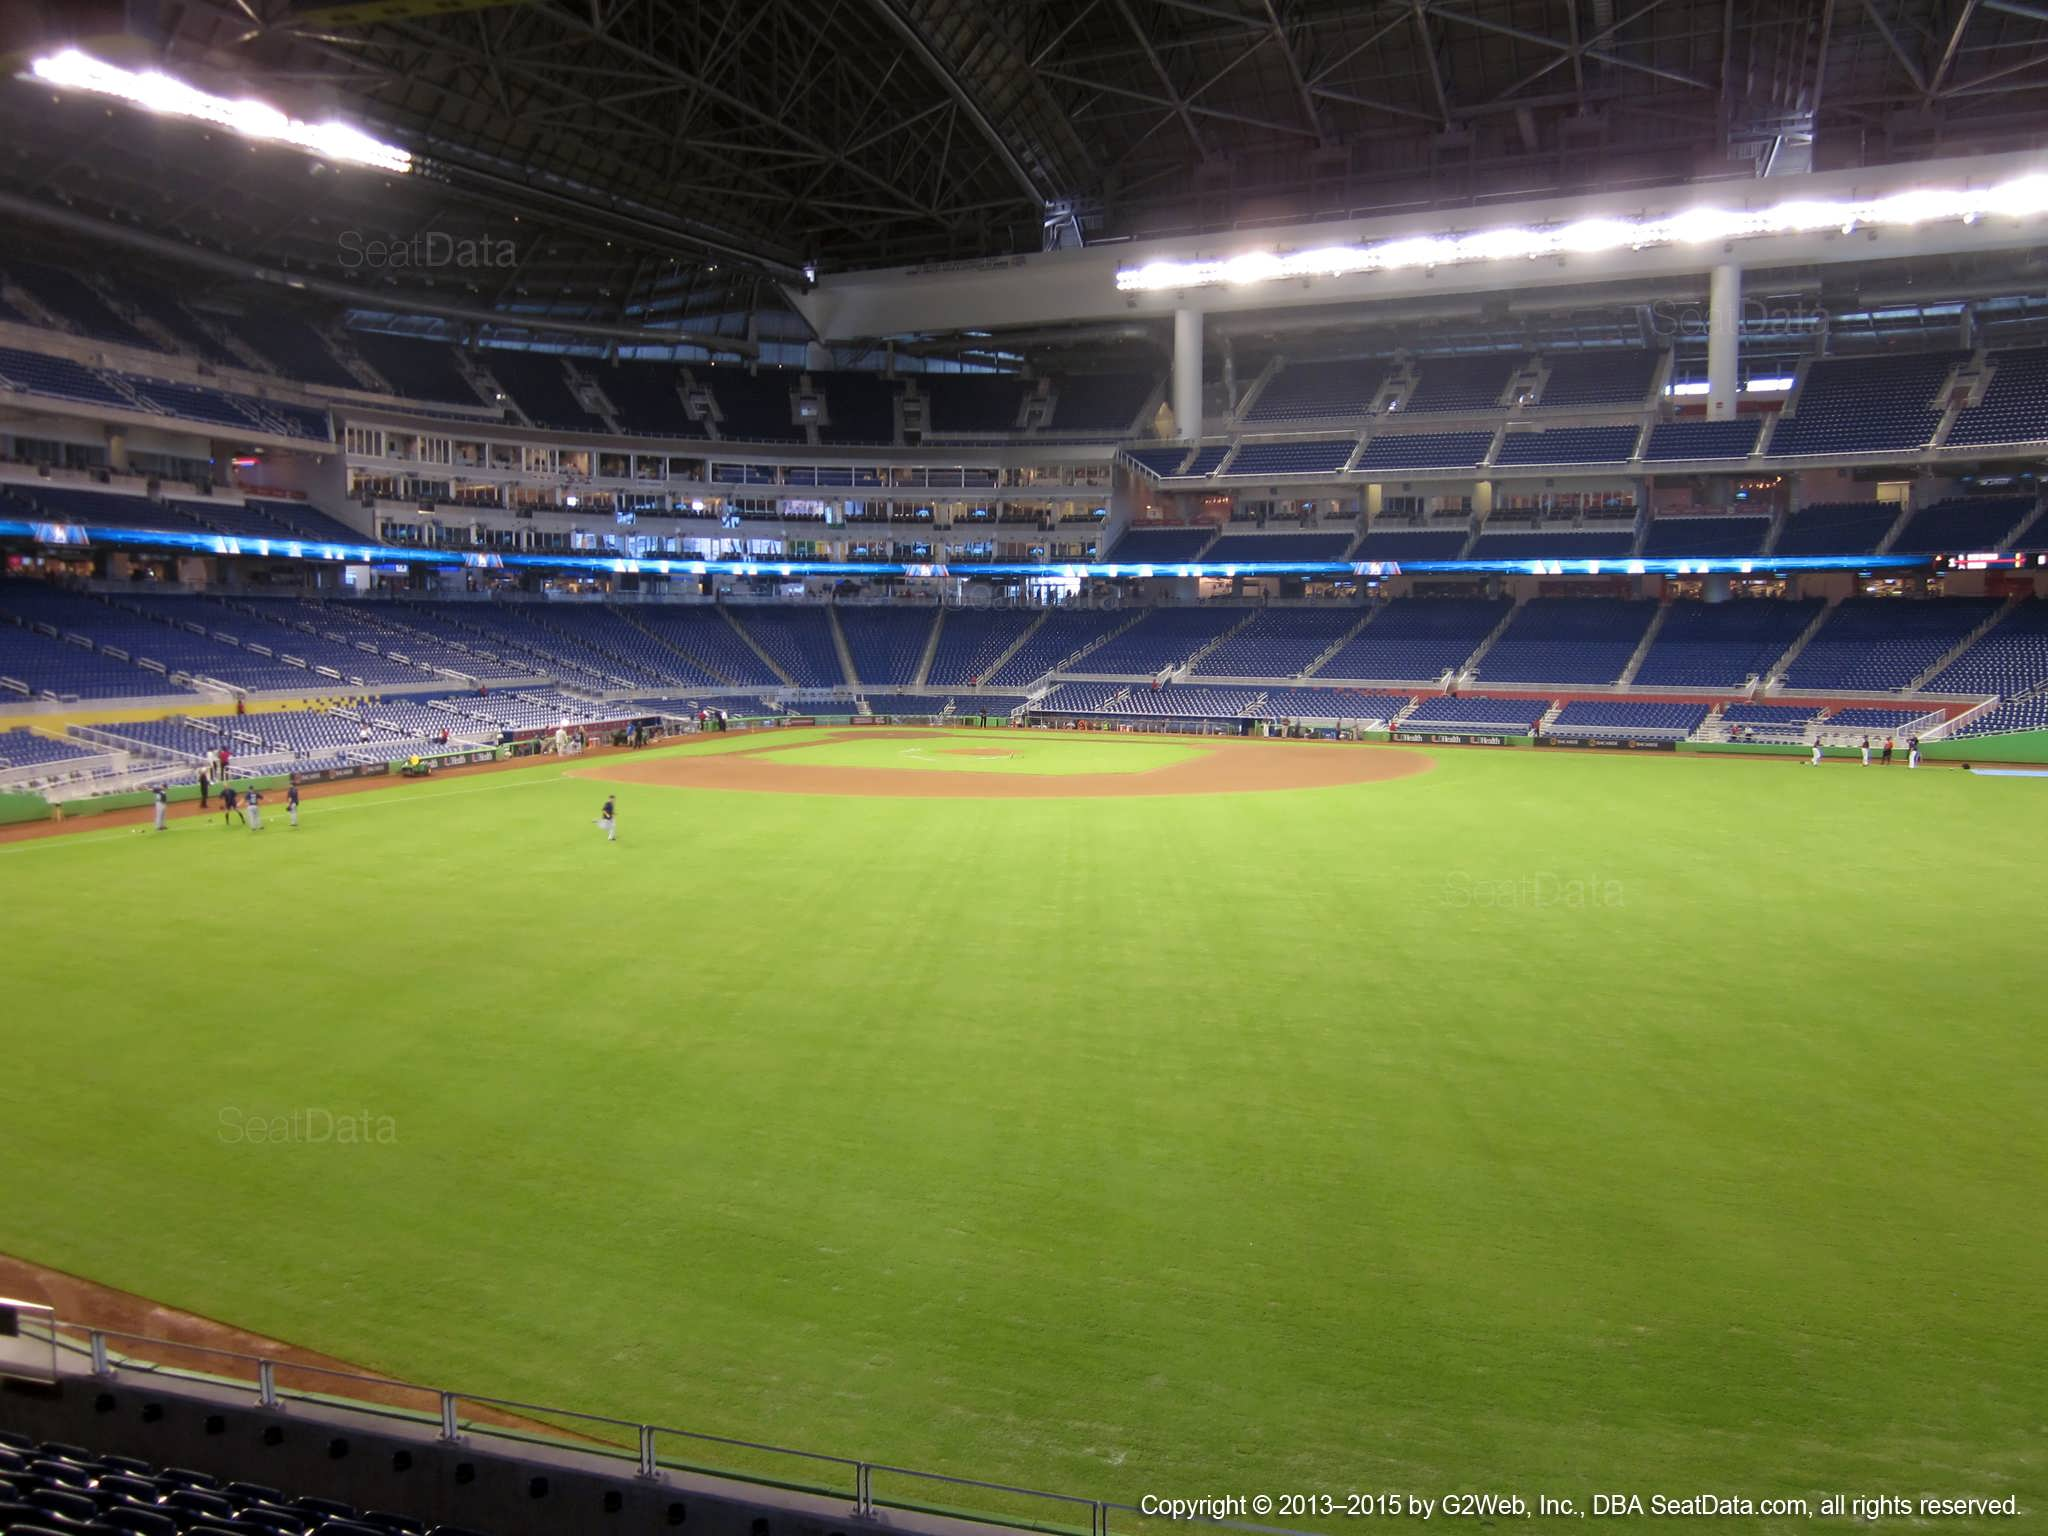 Seat view from section 36 at Marlins Park, home of the Miami Marlins